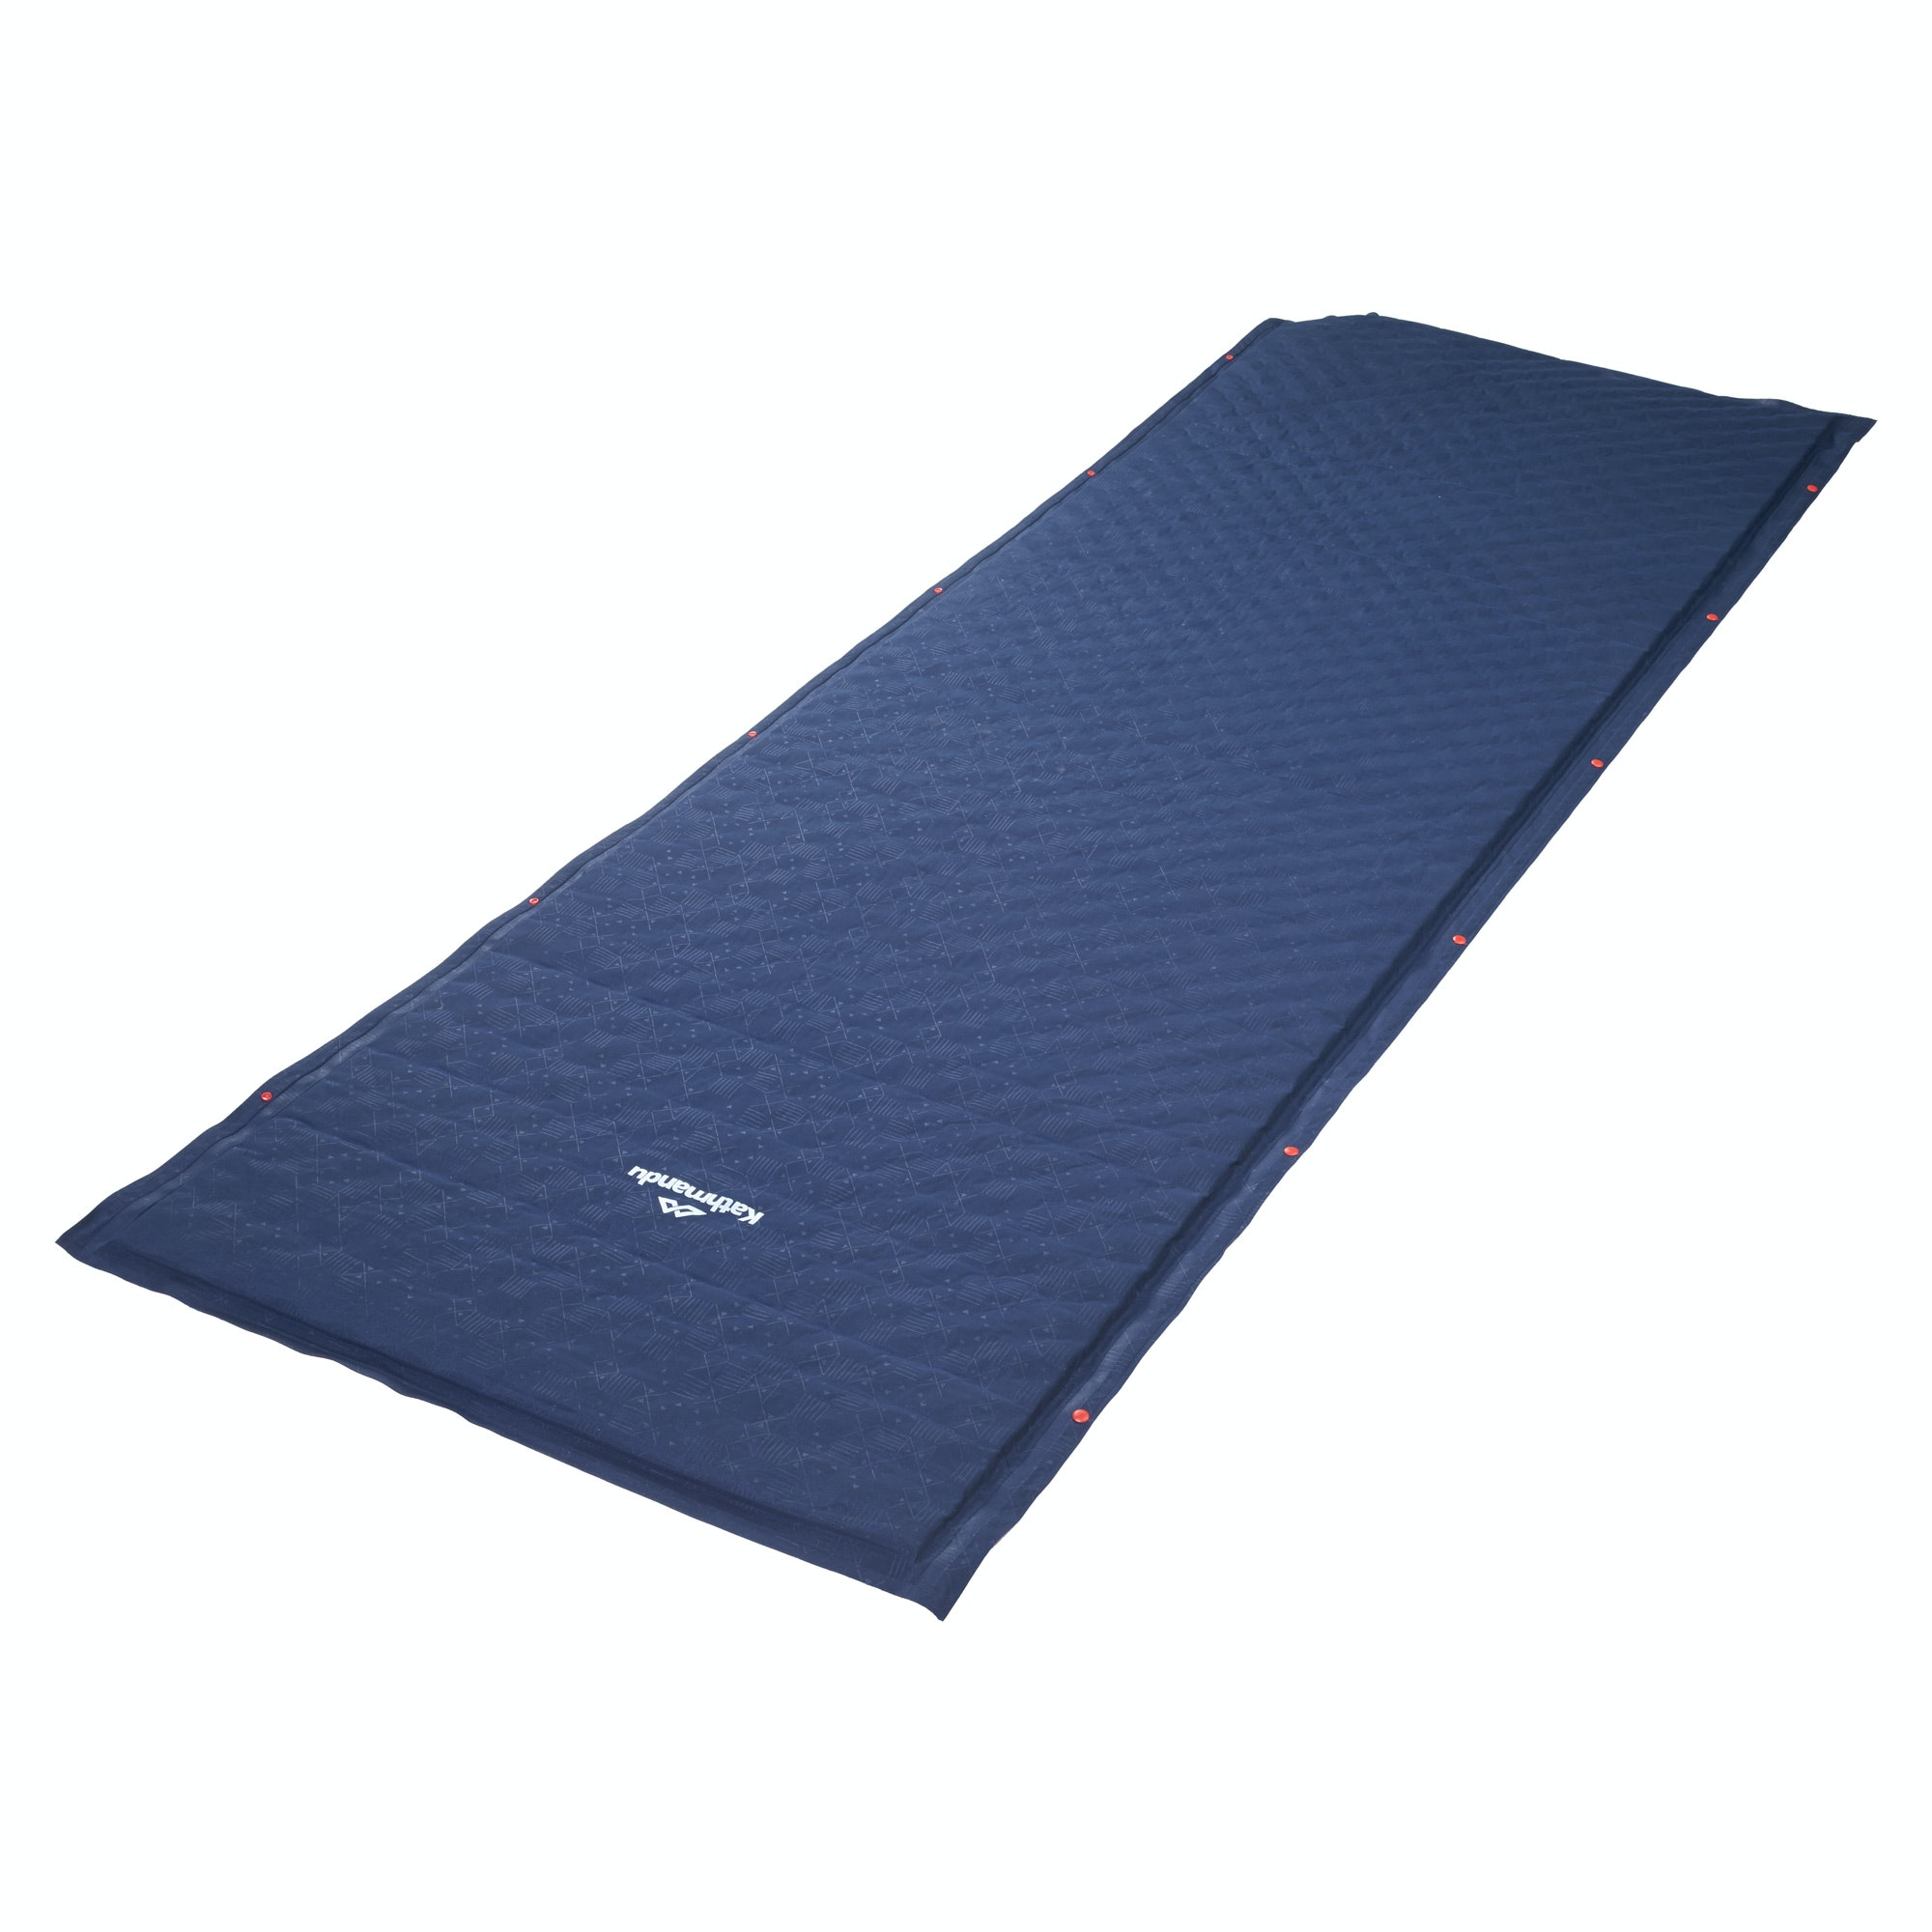 xpe mat sleeping camping weather product suitable hiking all for